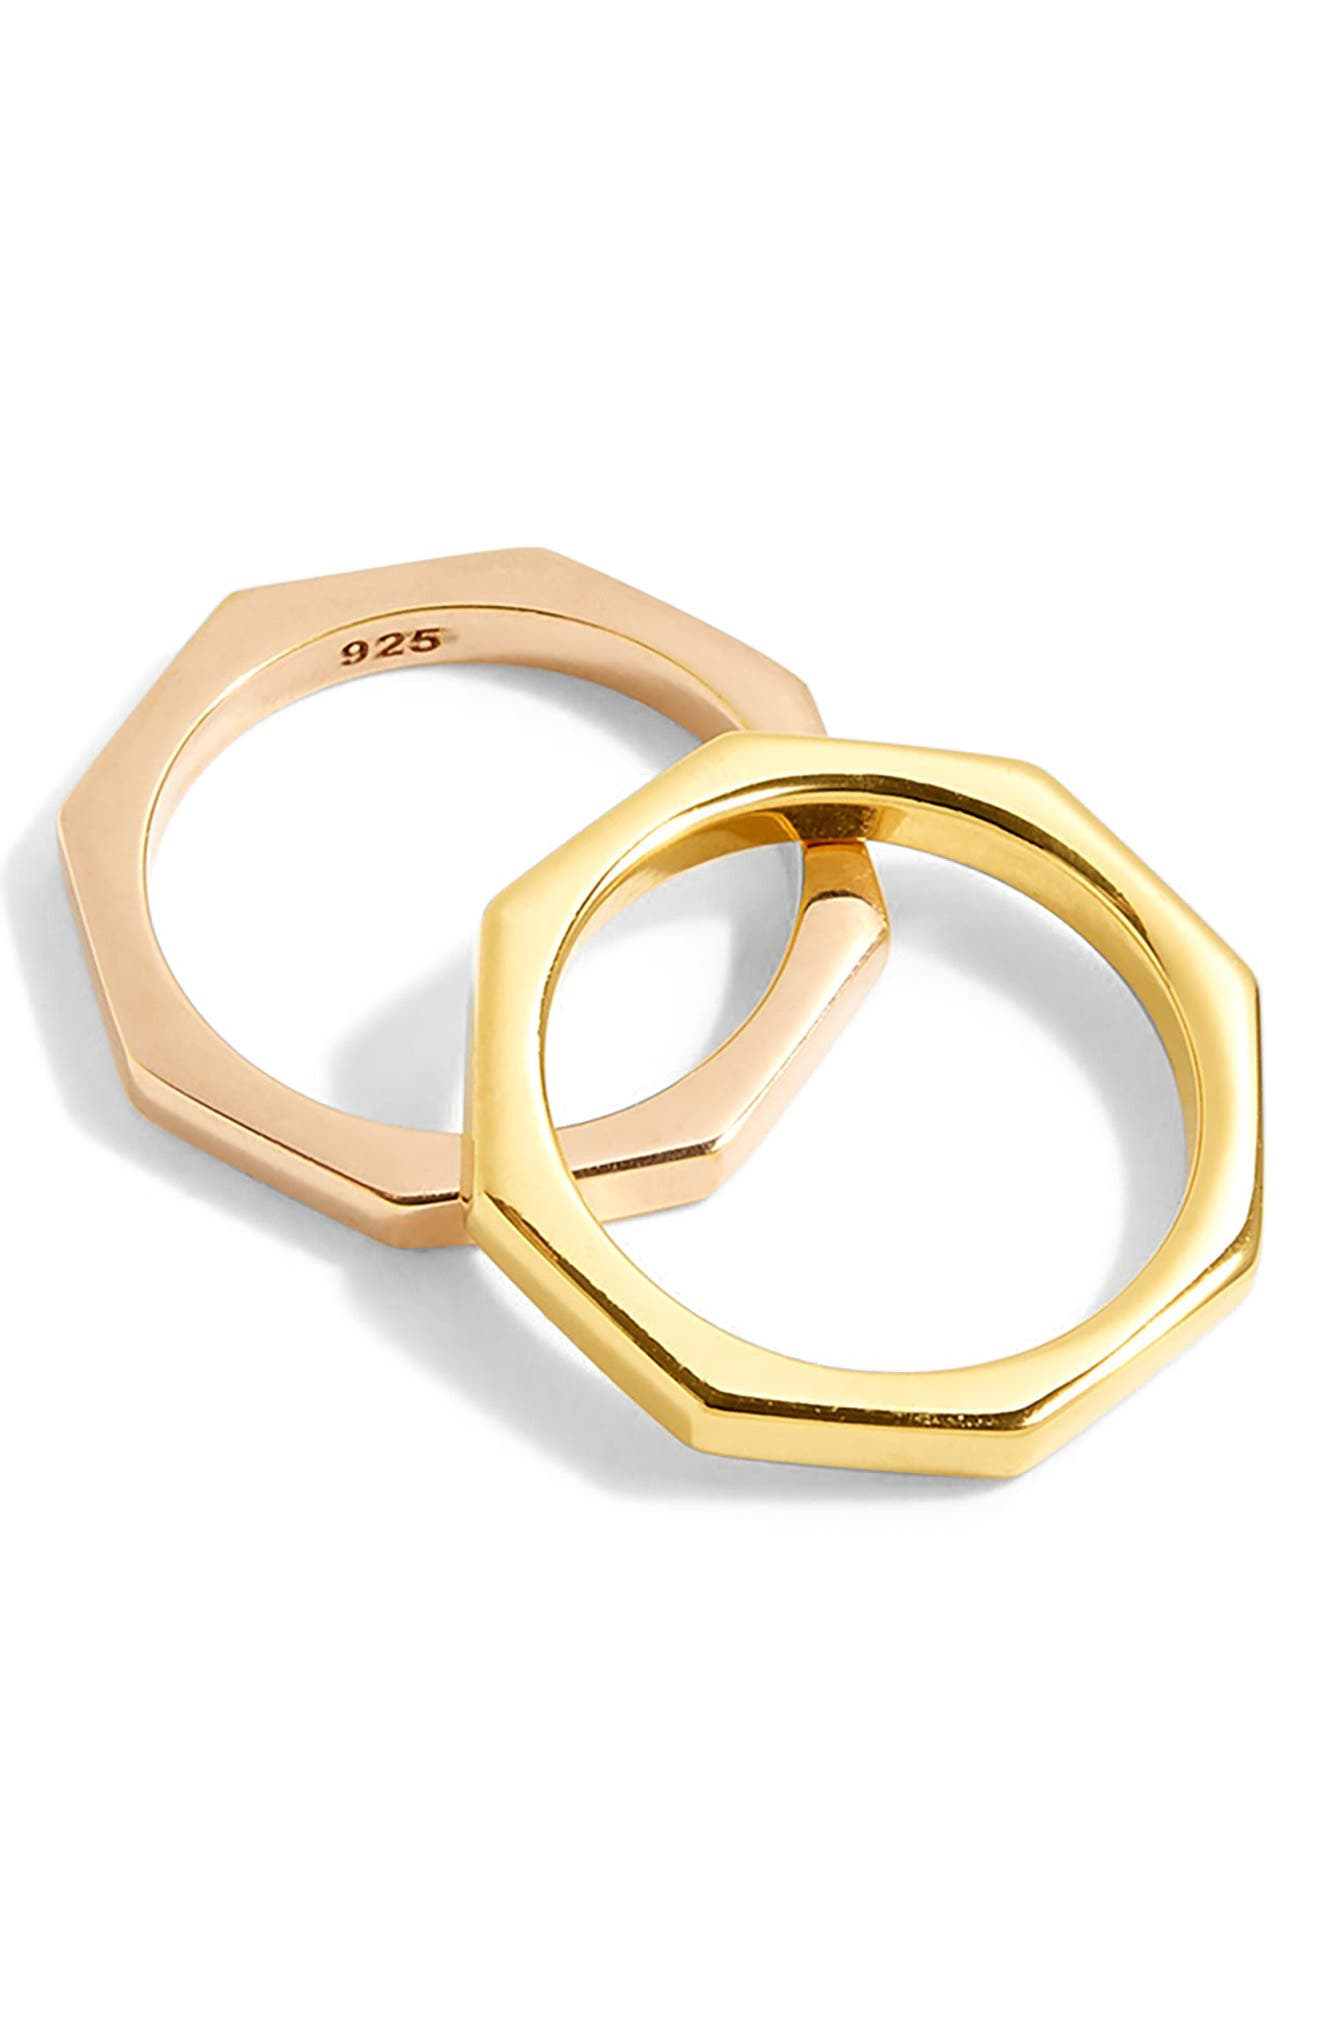 Octagon Stacked Rings,                         Main,                         color, Mixed Metal